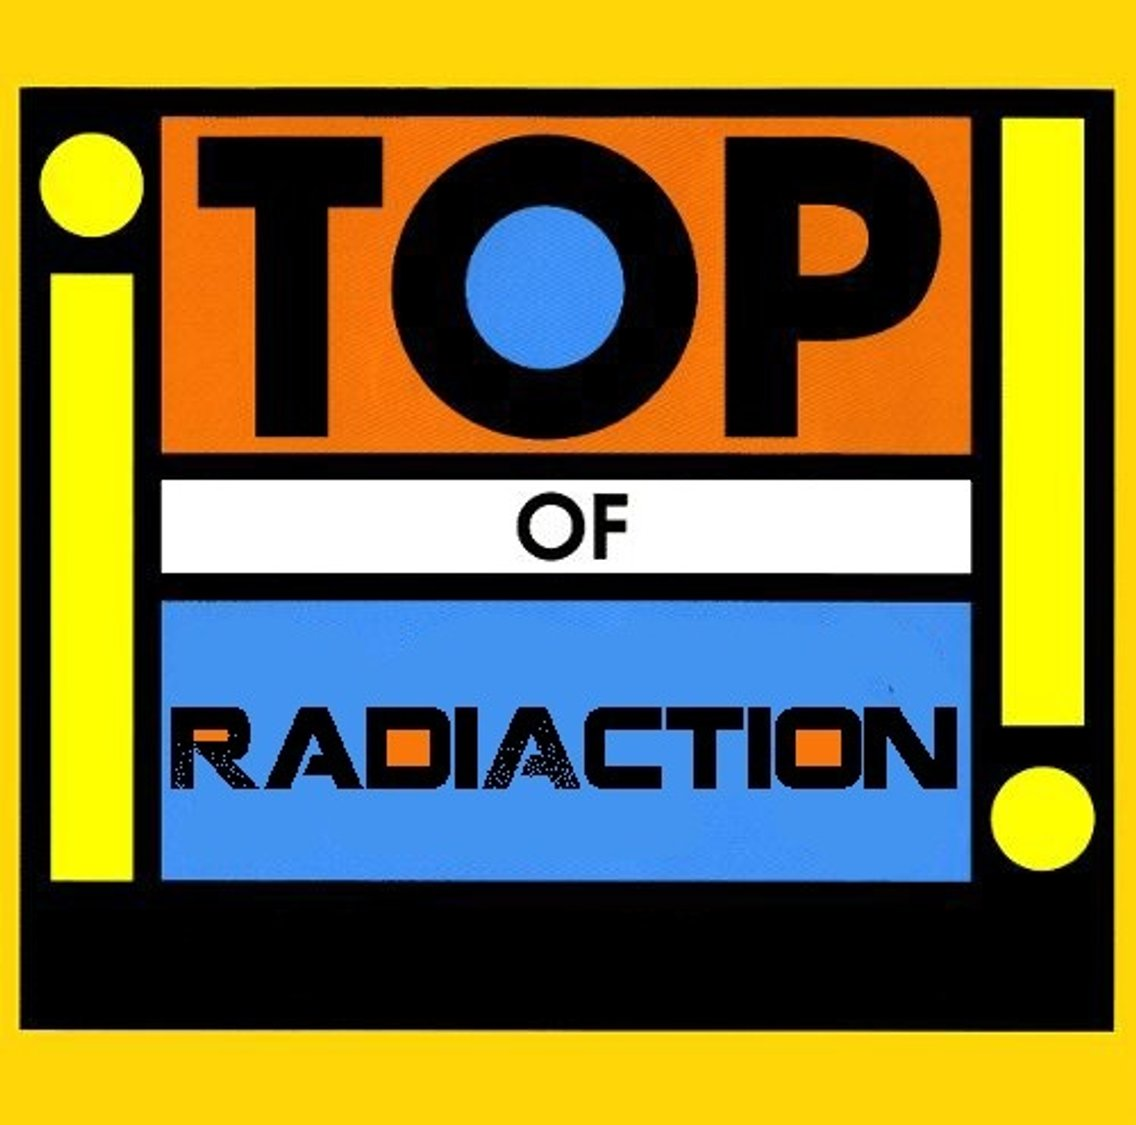 Top of RadiAction - Cover Image